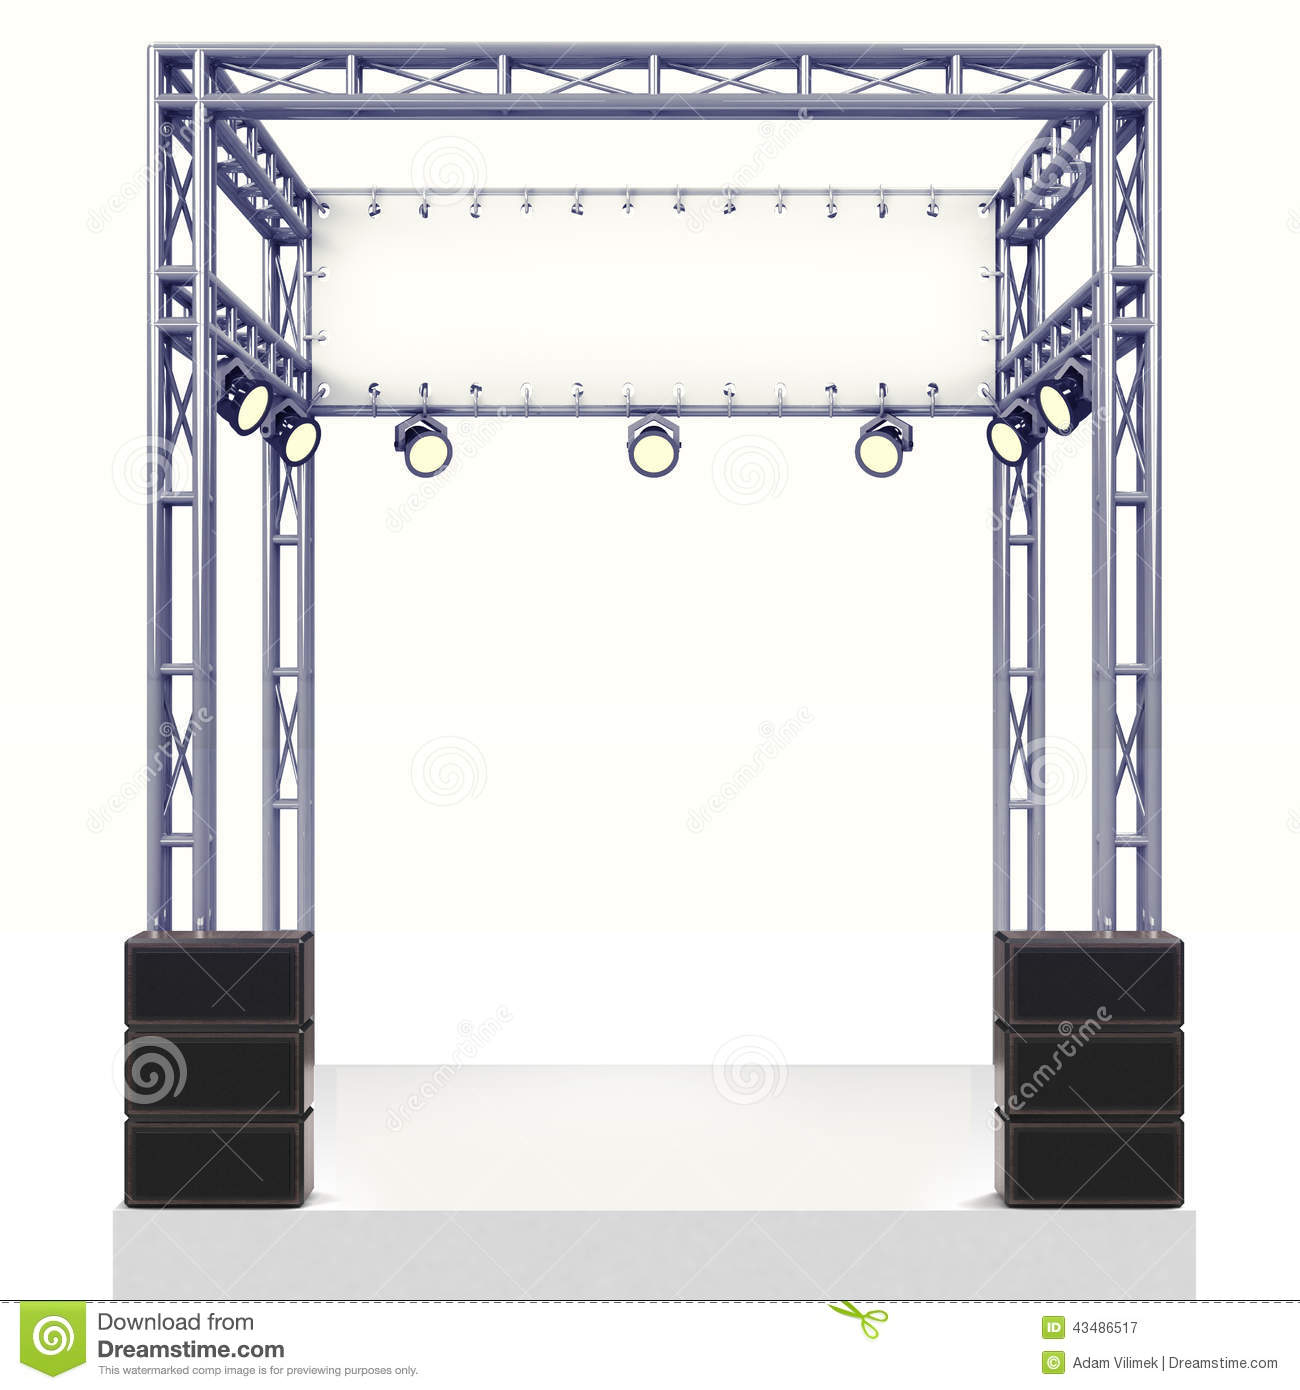 Staging Of Steel Images : Event stage steel construction with speaker on white stock